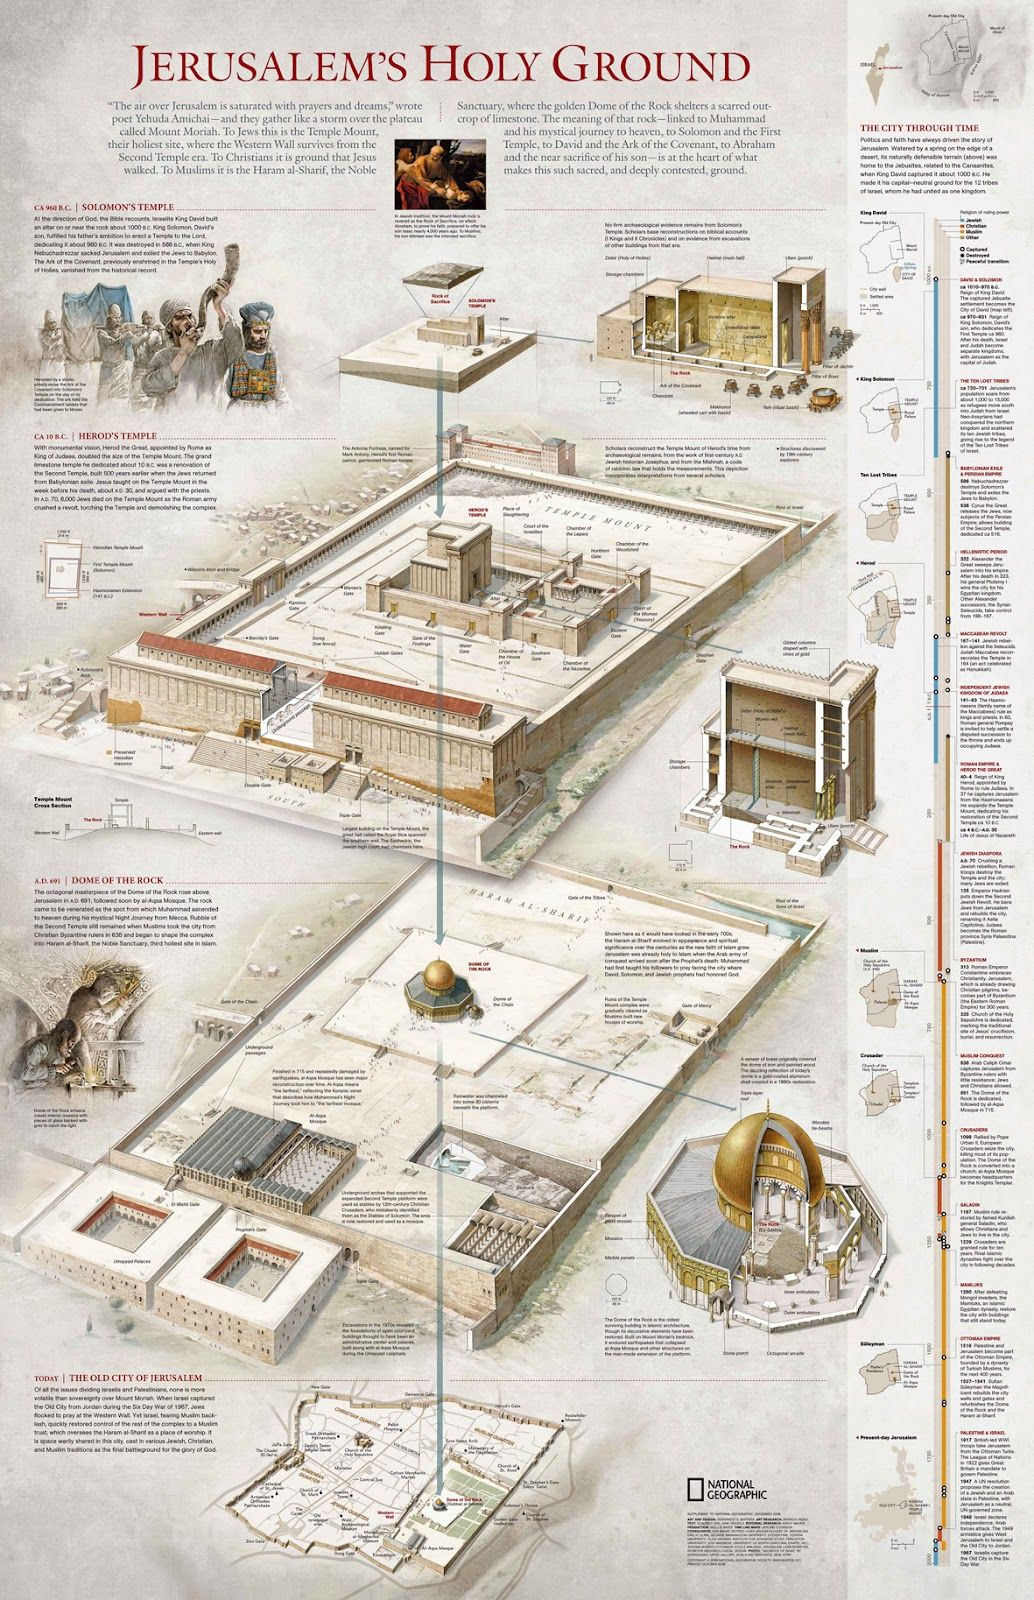 Temple Mount: A History. The Mystery of the Temple Mount What is the name of the Muslim shrine on the temple mount 12